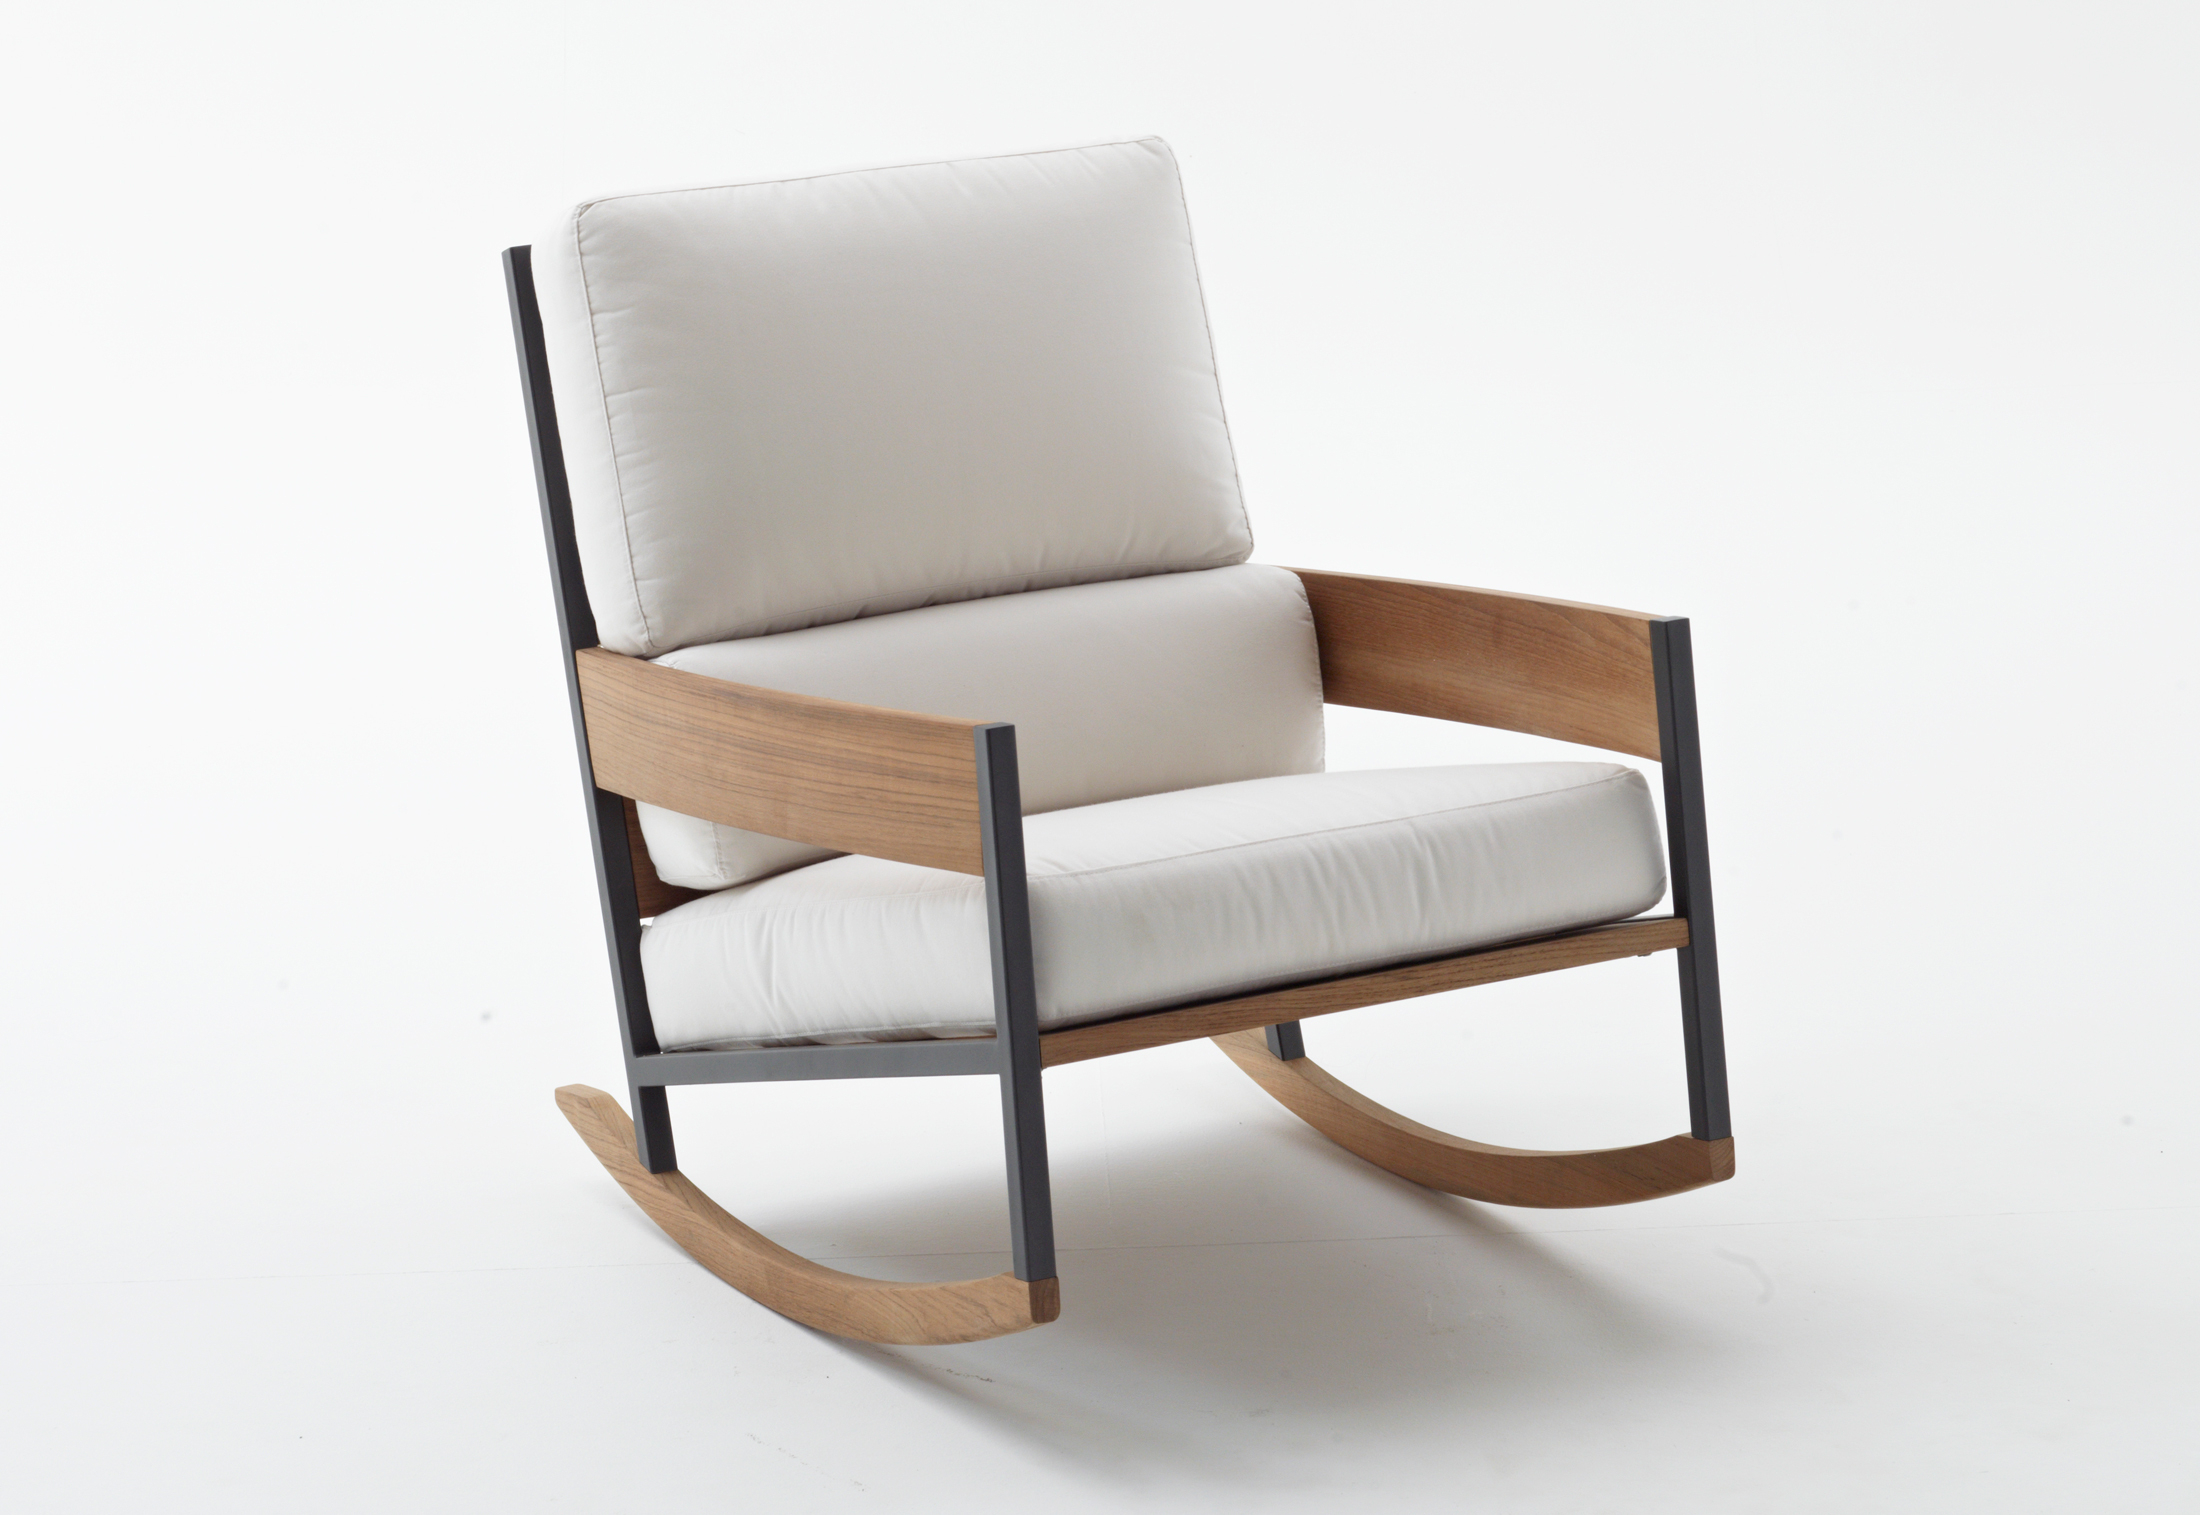 Nap Rocking Chairroda | Stylepark Intended For Rocking Chairs In Linen Fabric With Brushed Finish Base (#9 of 20)